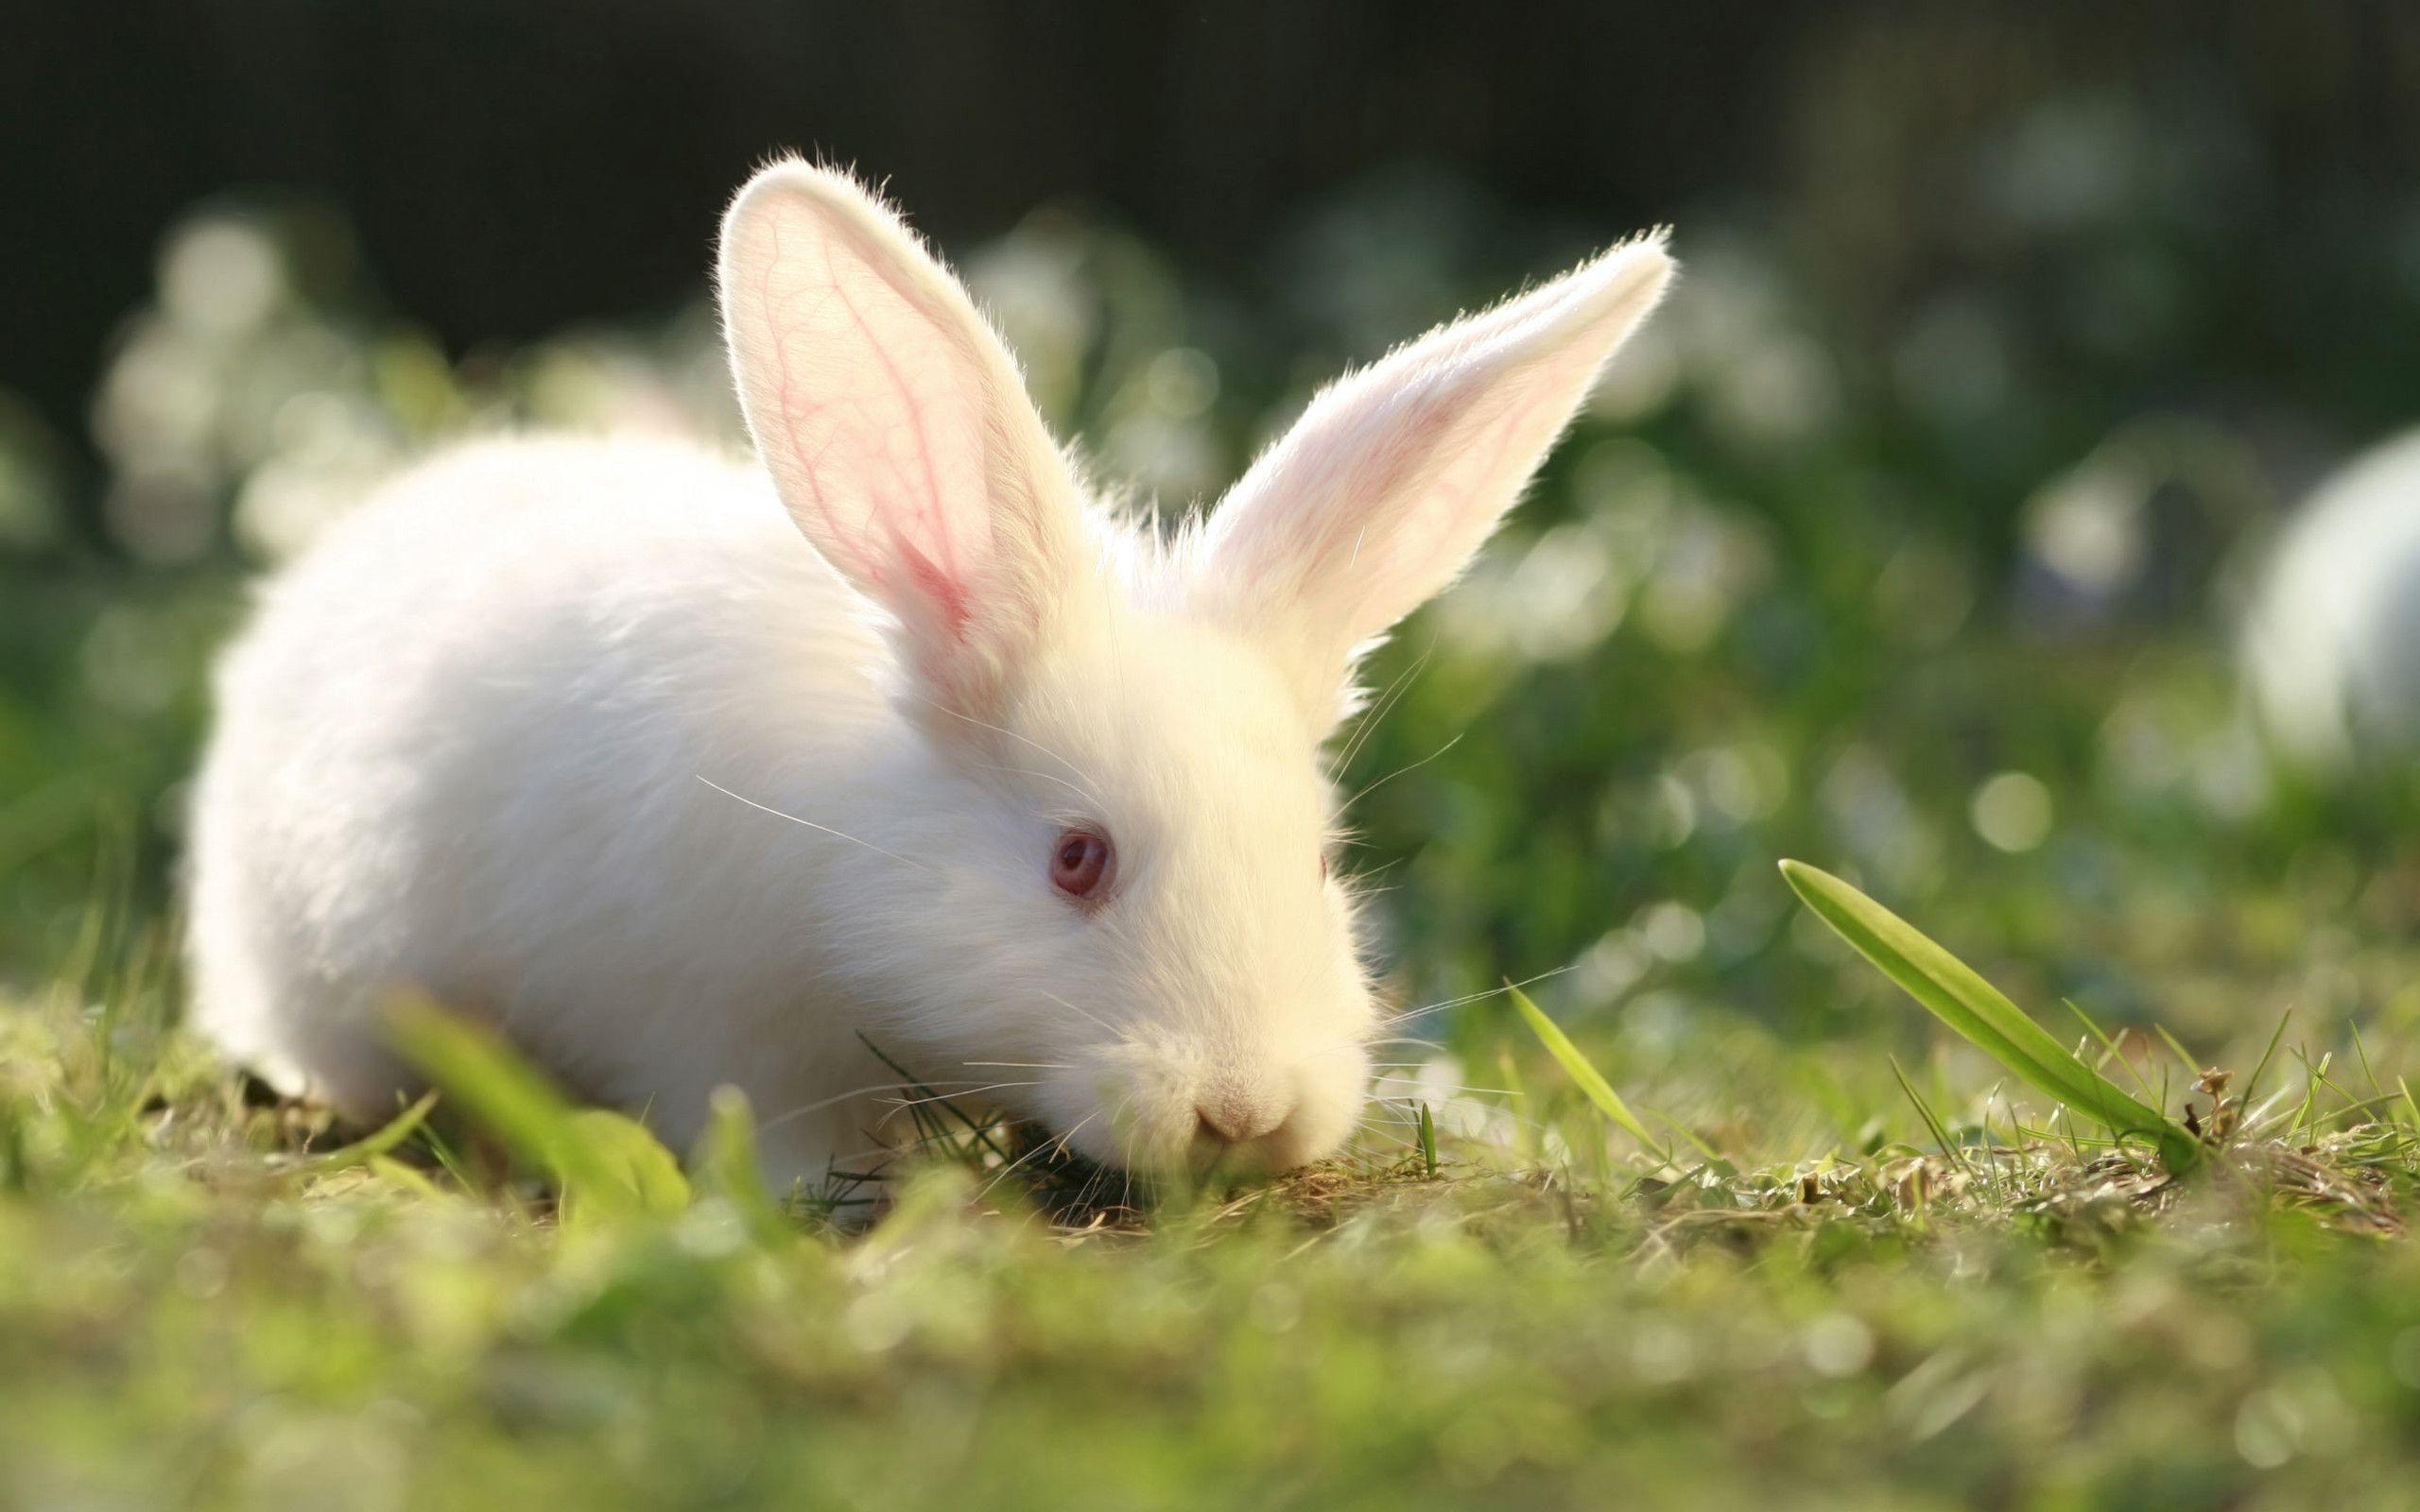 Cute Babies Hd Wallpapers 1366x768 White Rabbit Wallpapers Wallpaper Cave